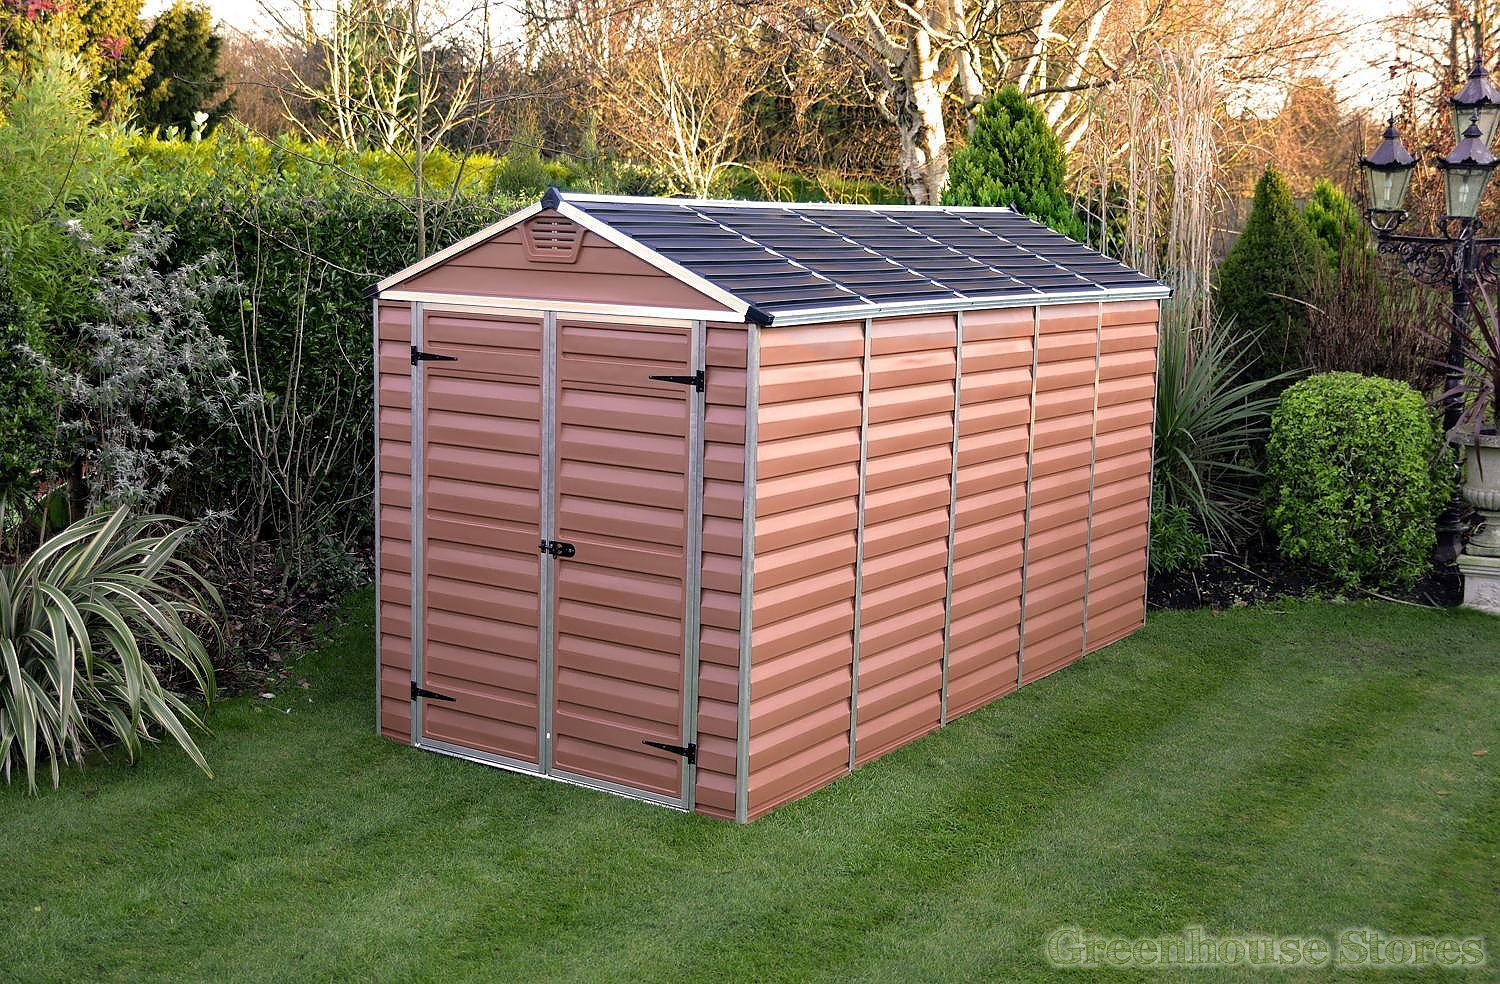 palram 6x12 plastic skylight garden shed in amber